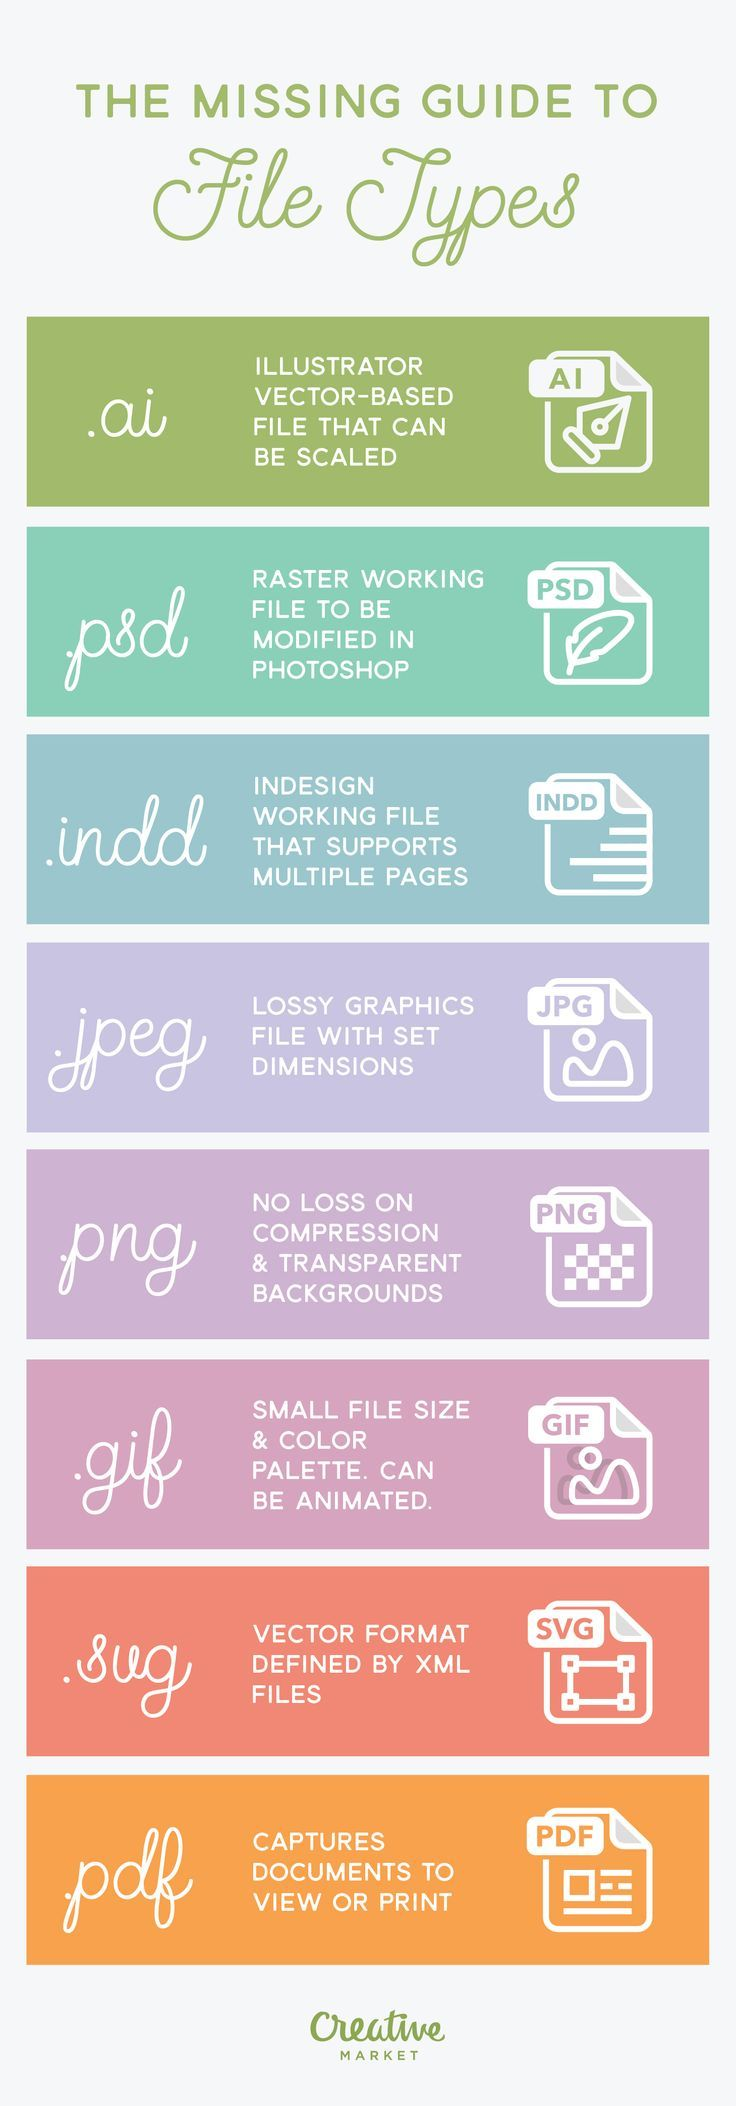 306 best design images on pinterest graph design advertising and 306 best design images on pinterest graph design advertising and infographic fandeluxe Image collections